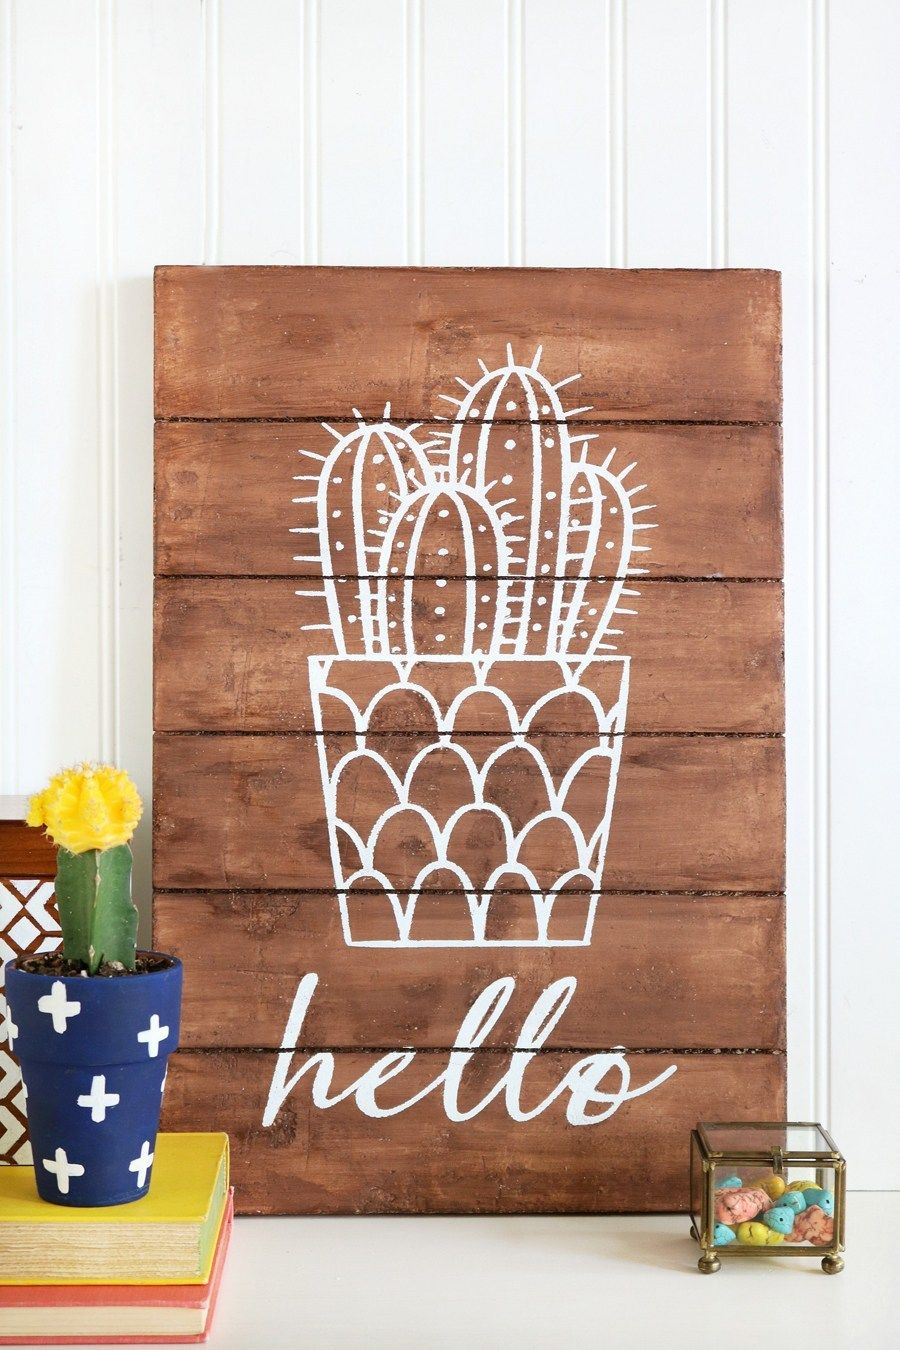 Easy DIY Cactus Crafts to Make, Sell, and Share #cactuscraft